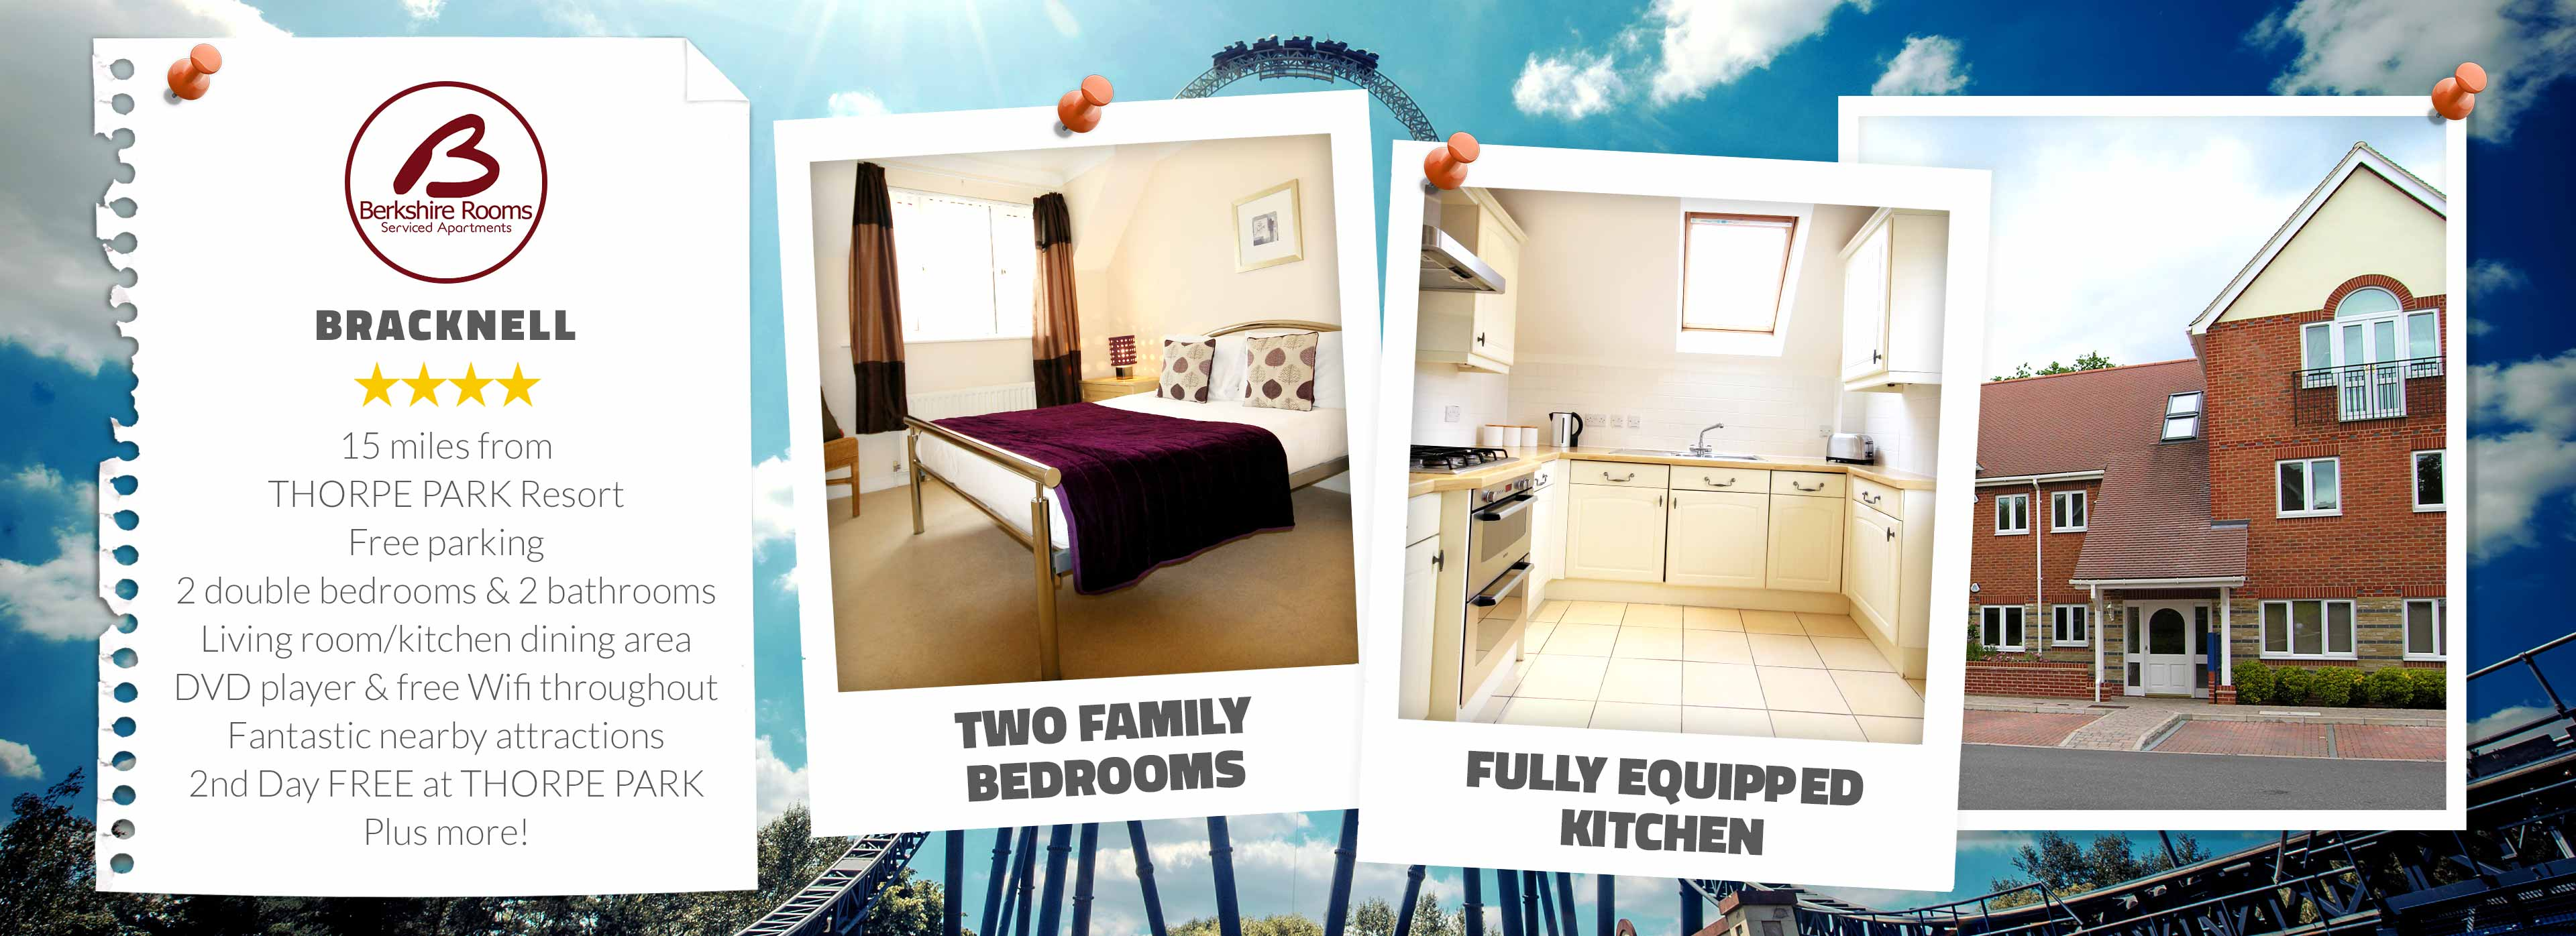 Berkshire Rooms near THORPE PARK Resort